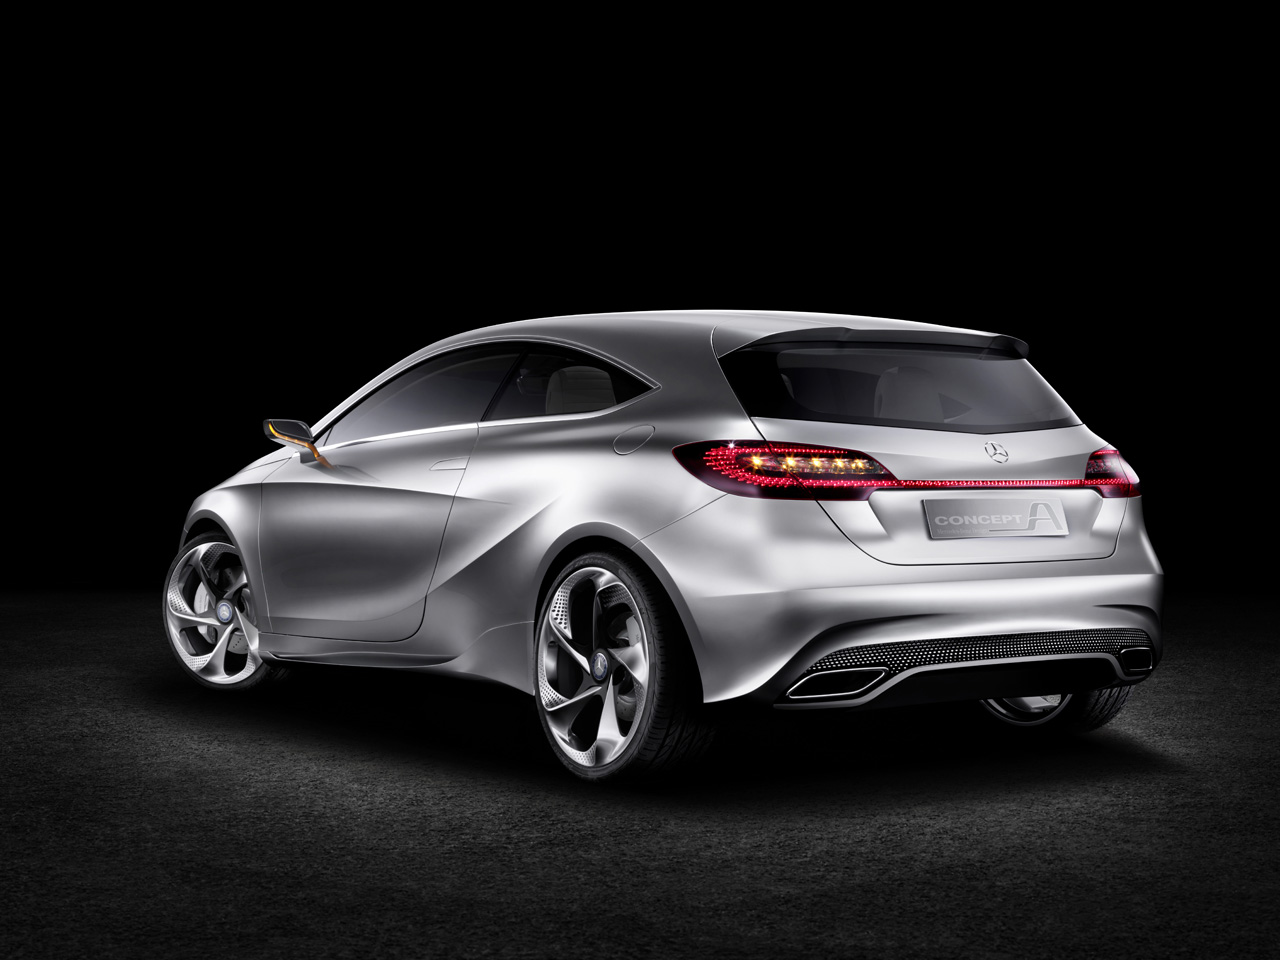 Mercedes Concept A-Class